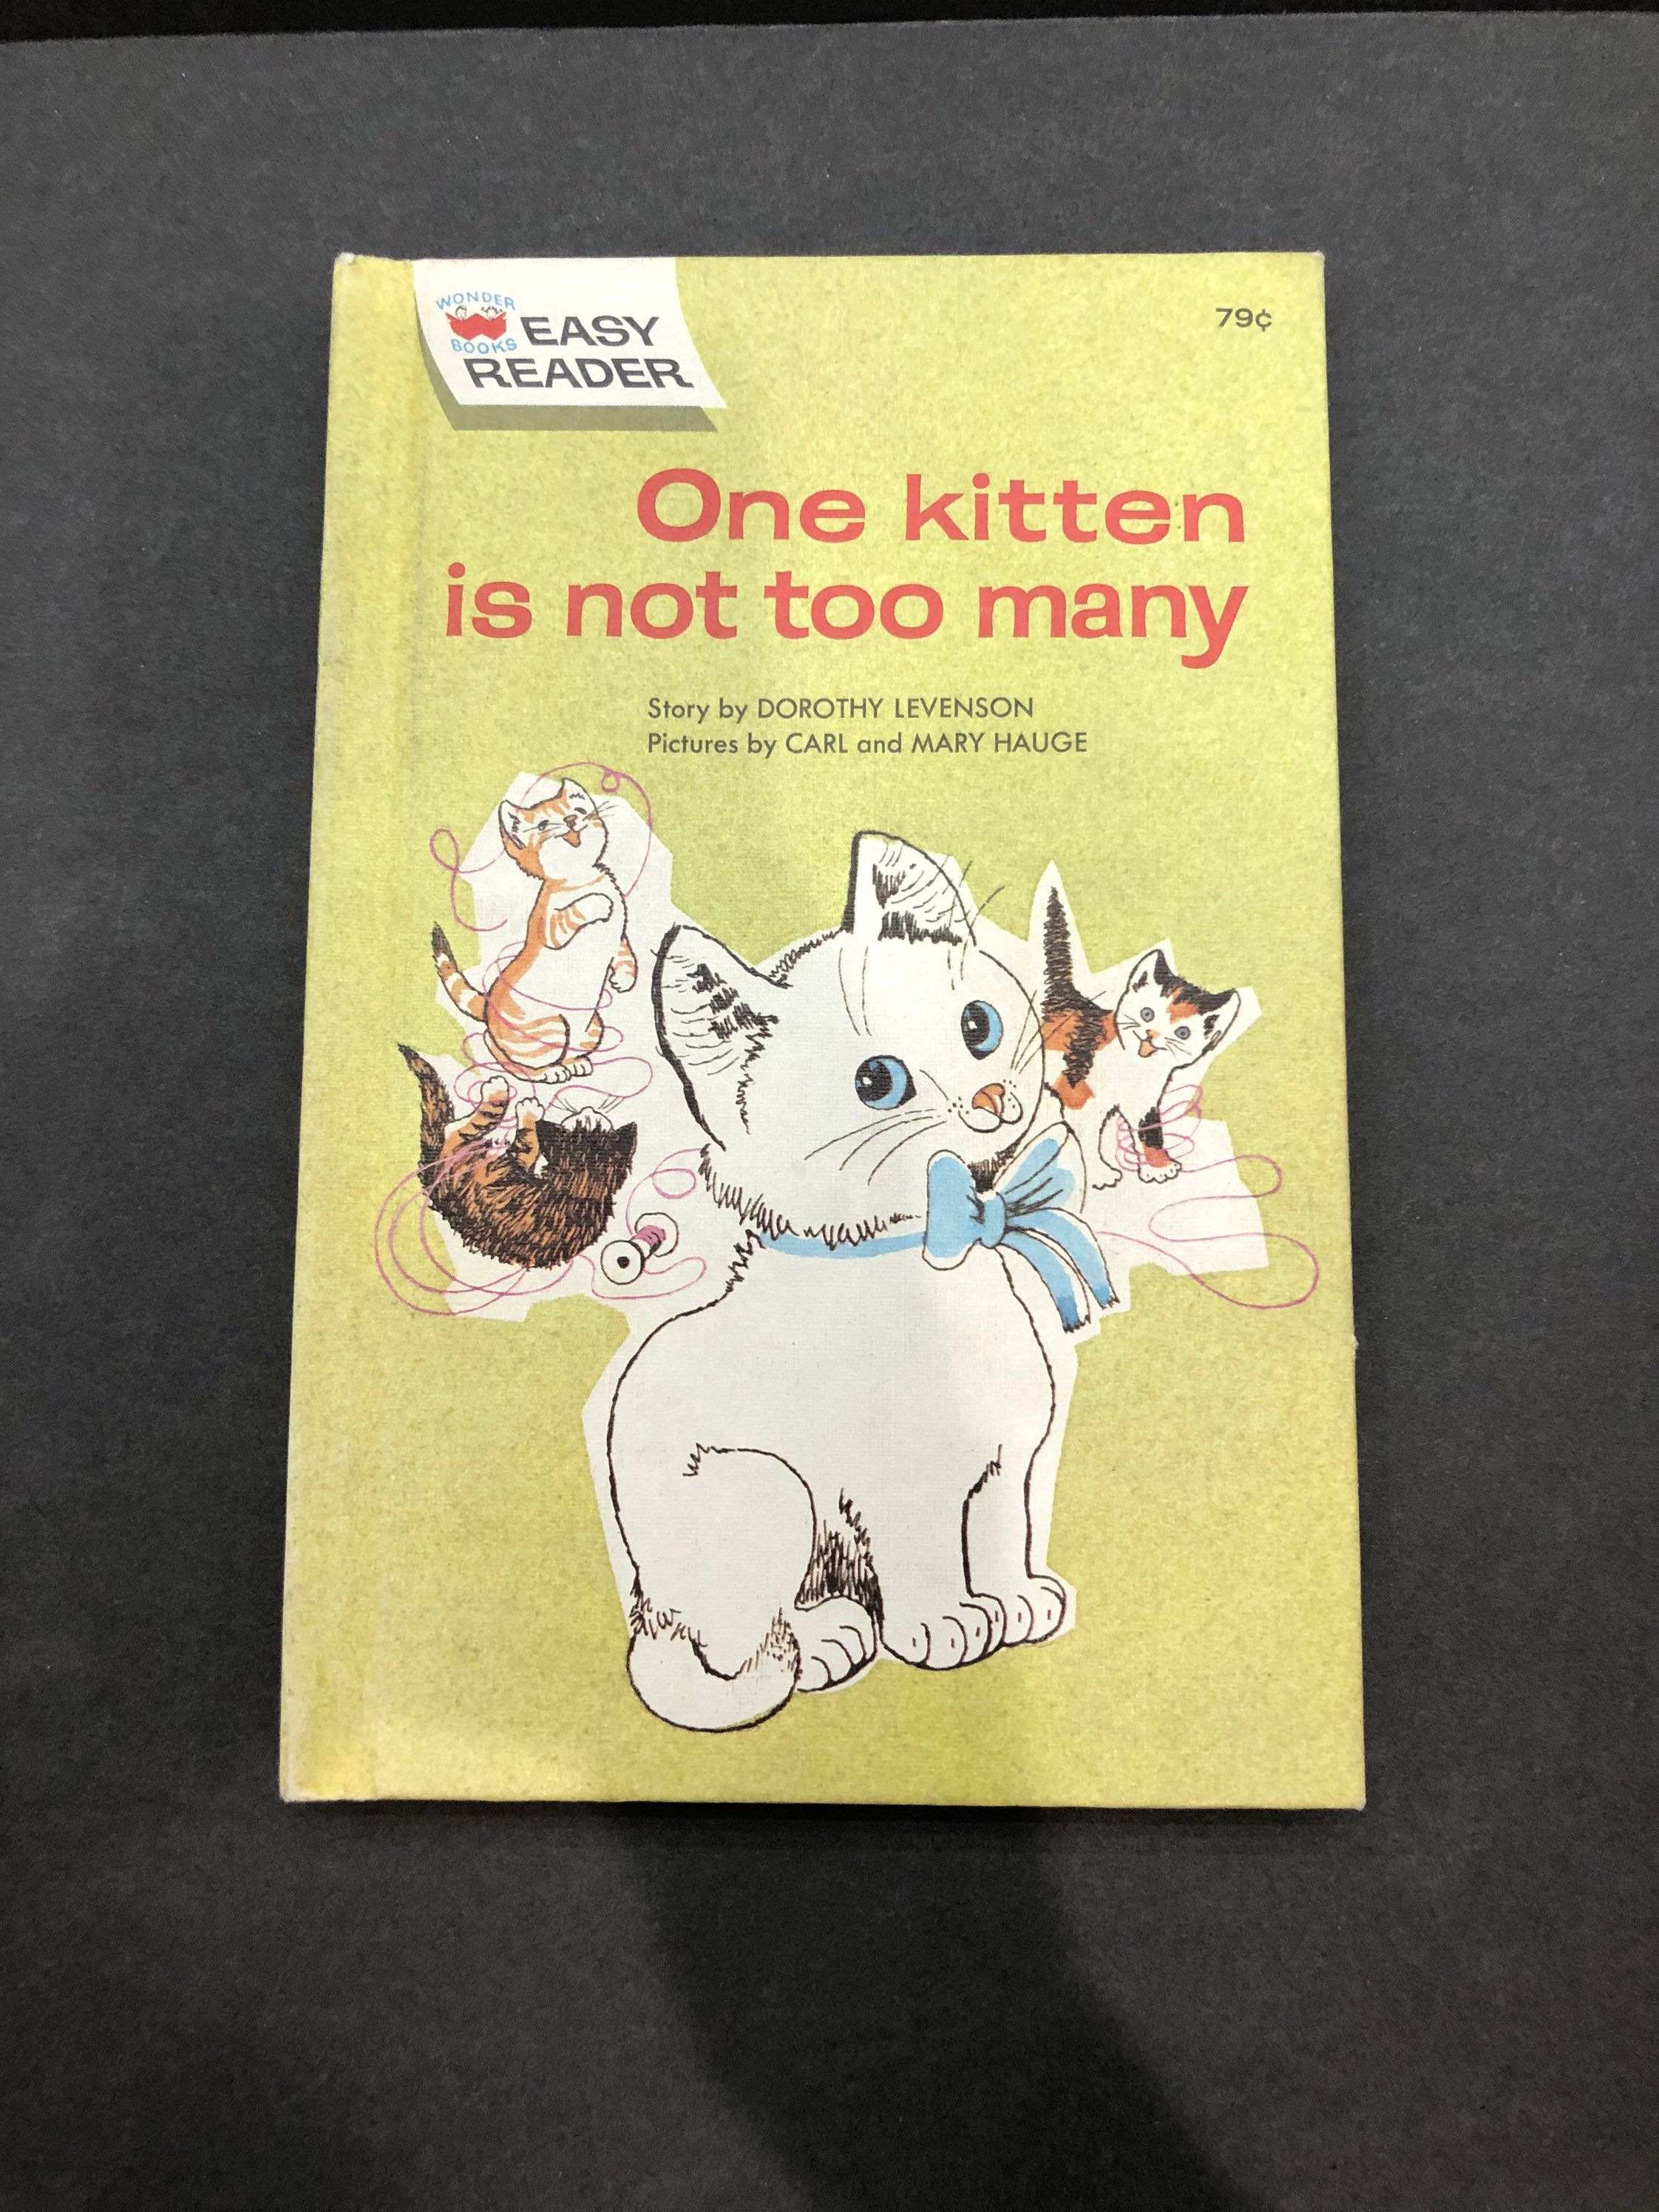 1964 one kitten is not too many wonder book dorothy